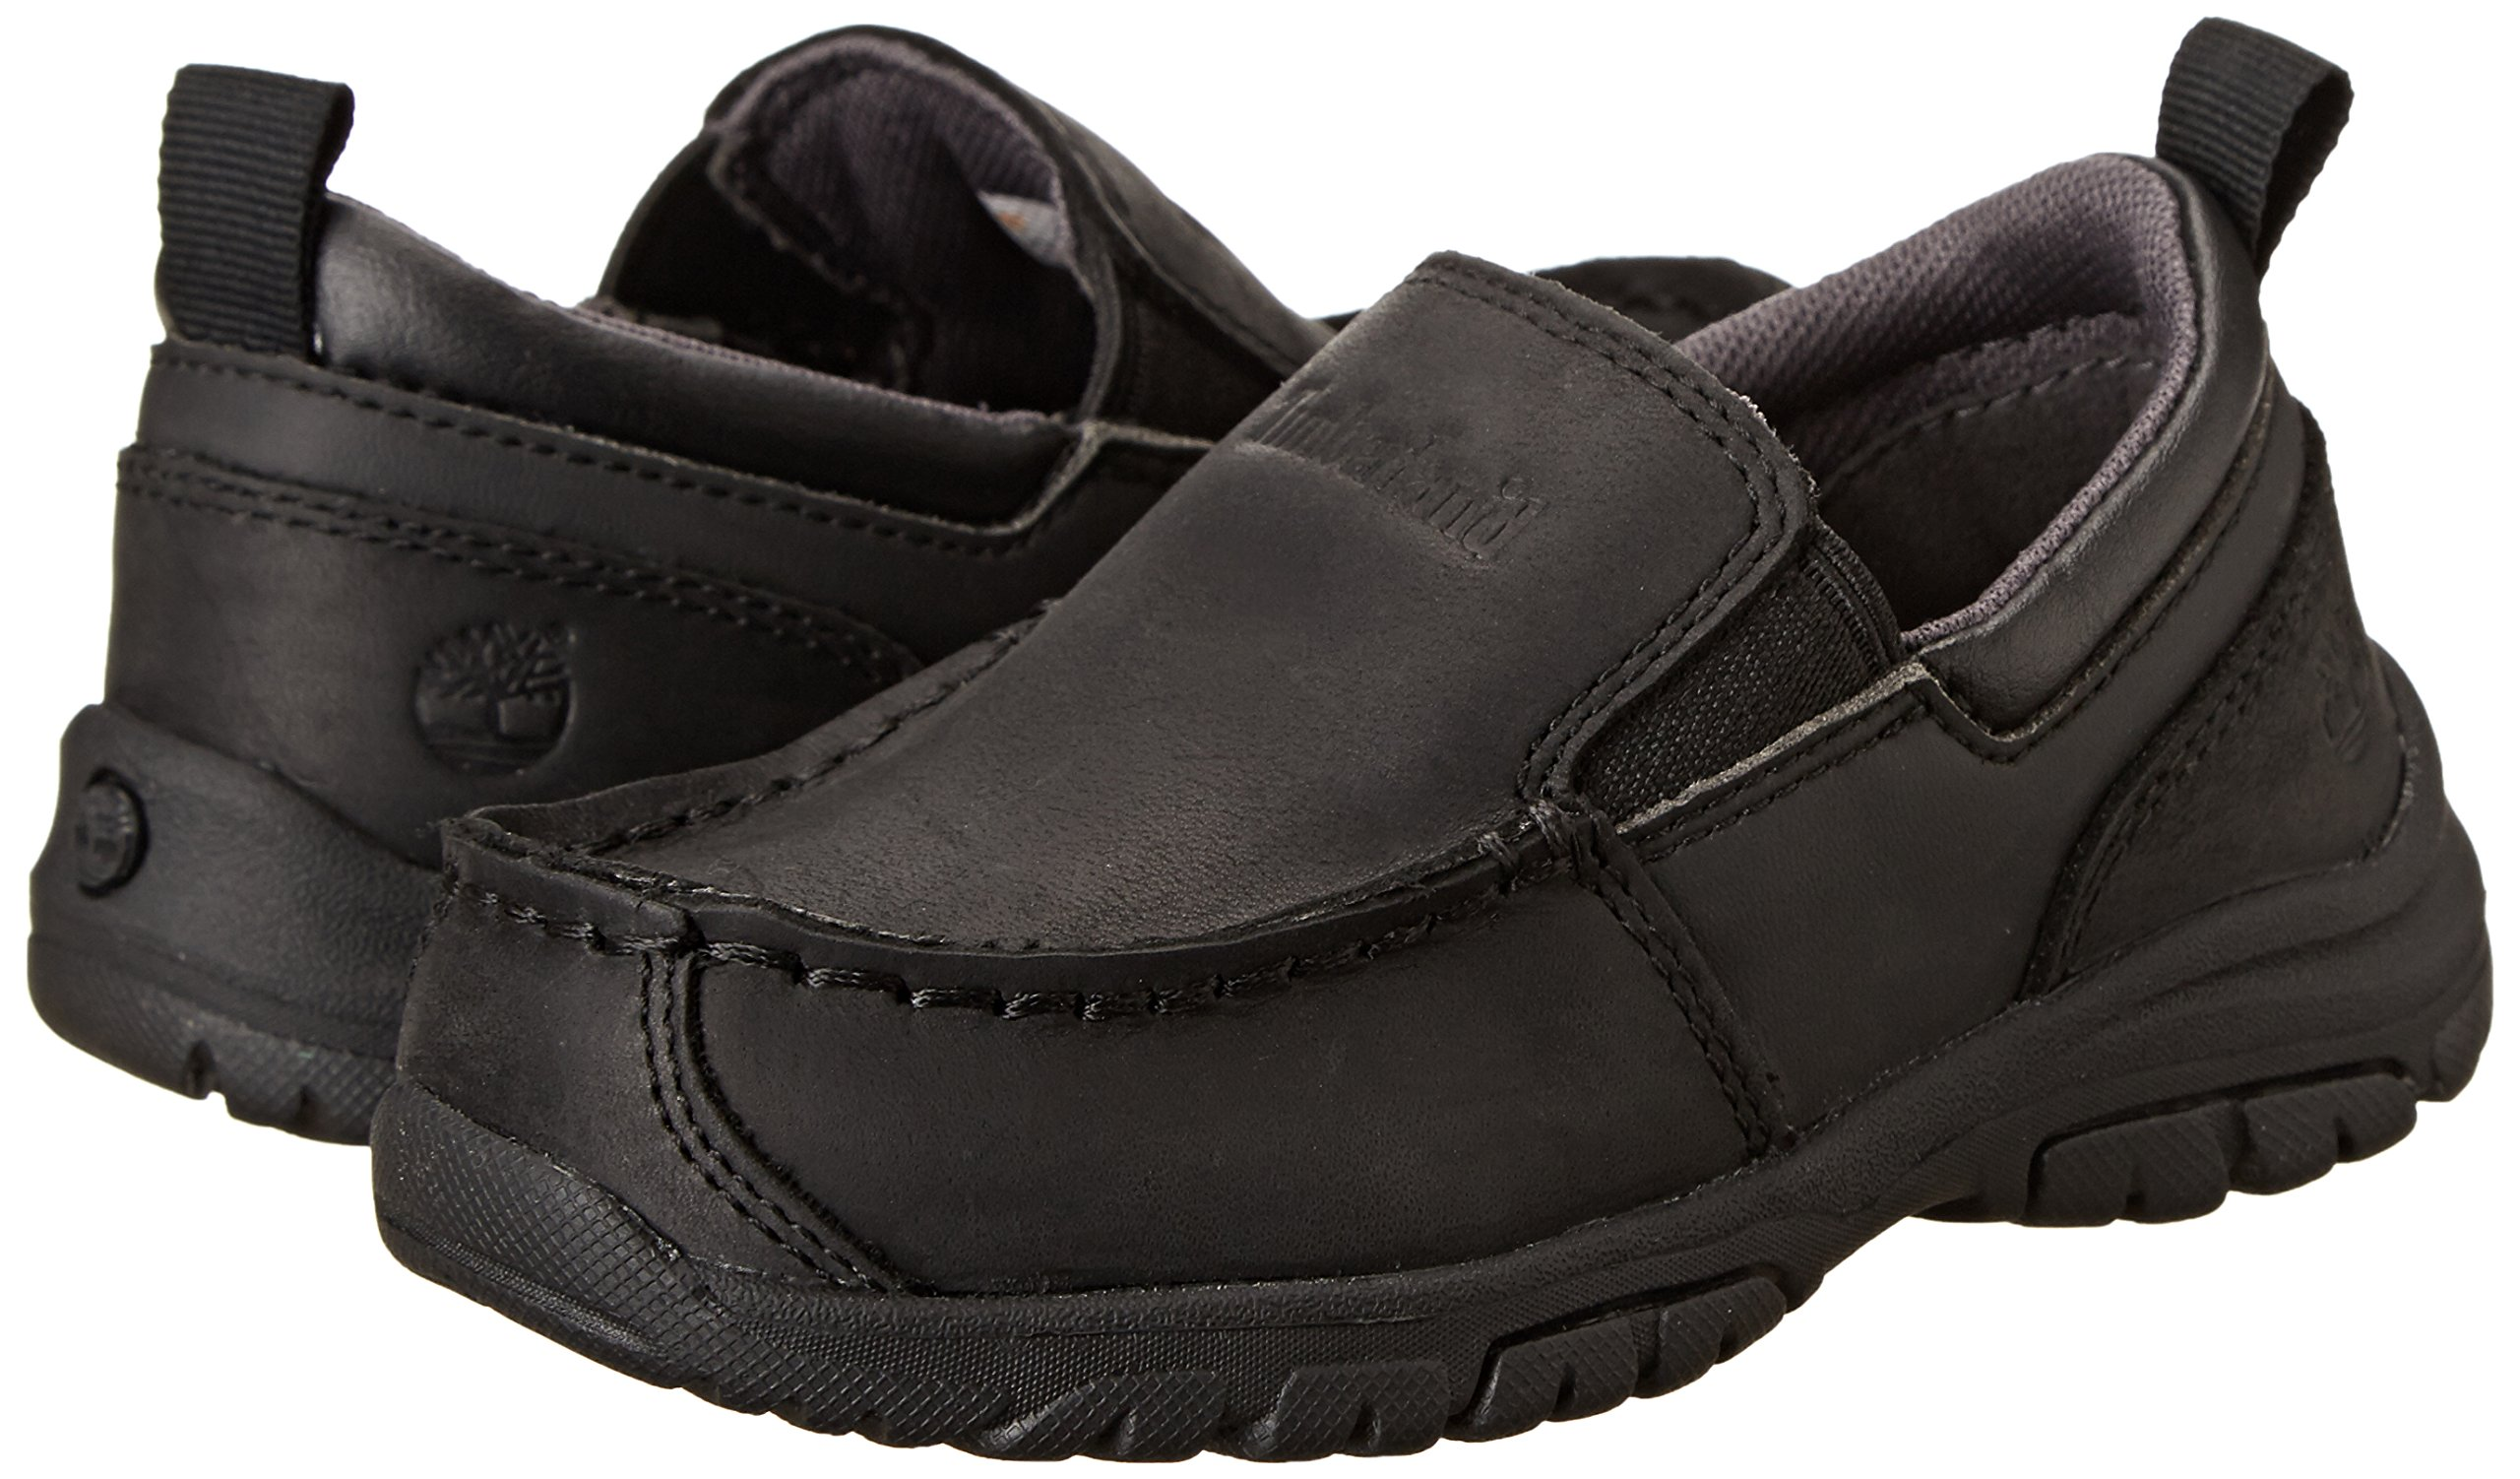 Timberland Discovery Pass Moc Toe Moc Toe Slip-On (Toddler/Little Kid/Big Kid),Black,9.5 M US Toddler by Timberland (Image #6)